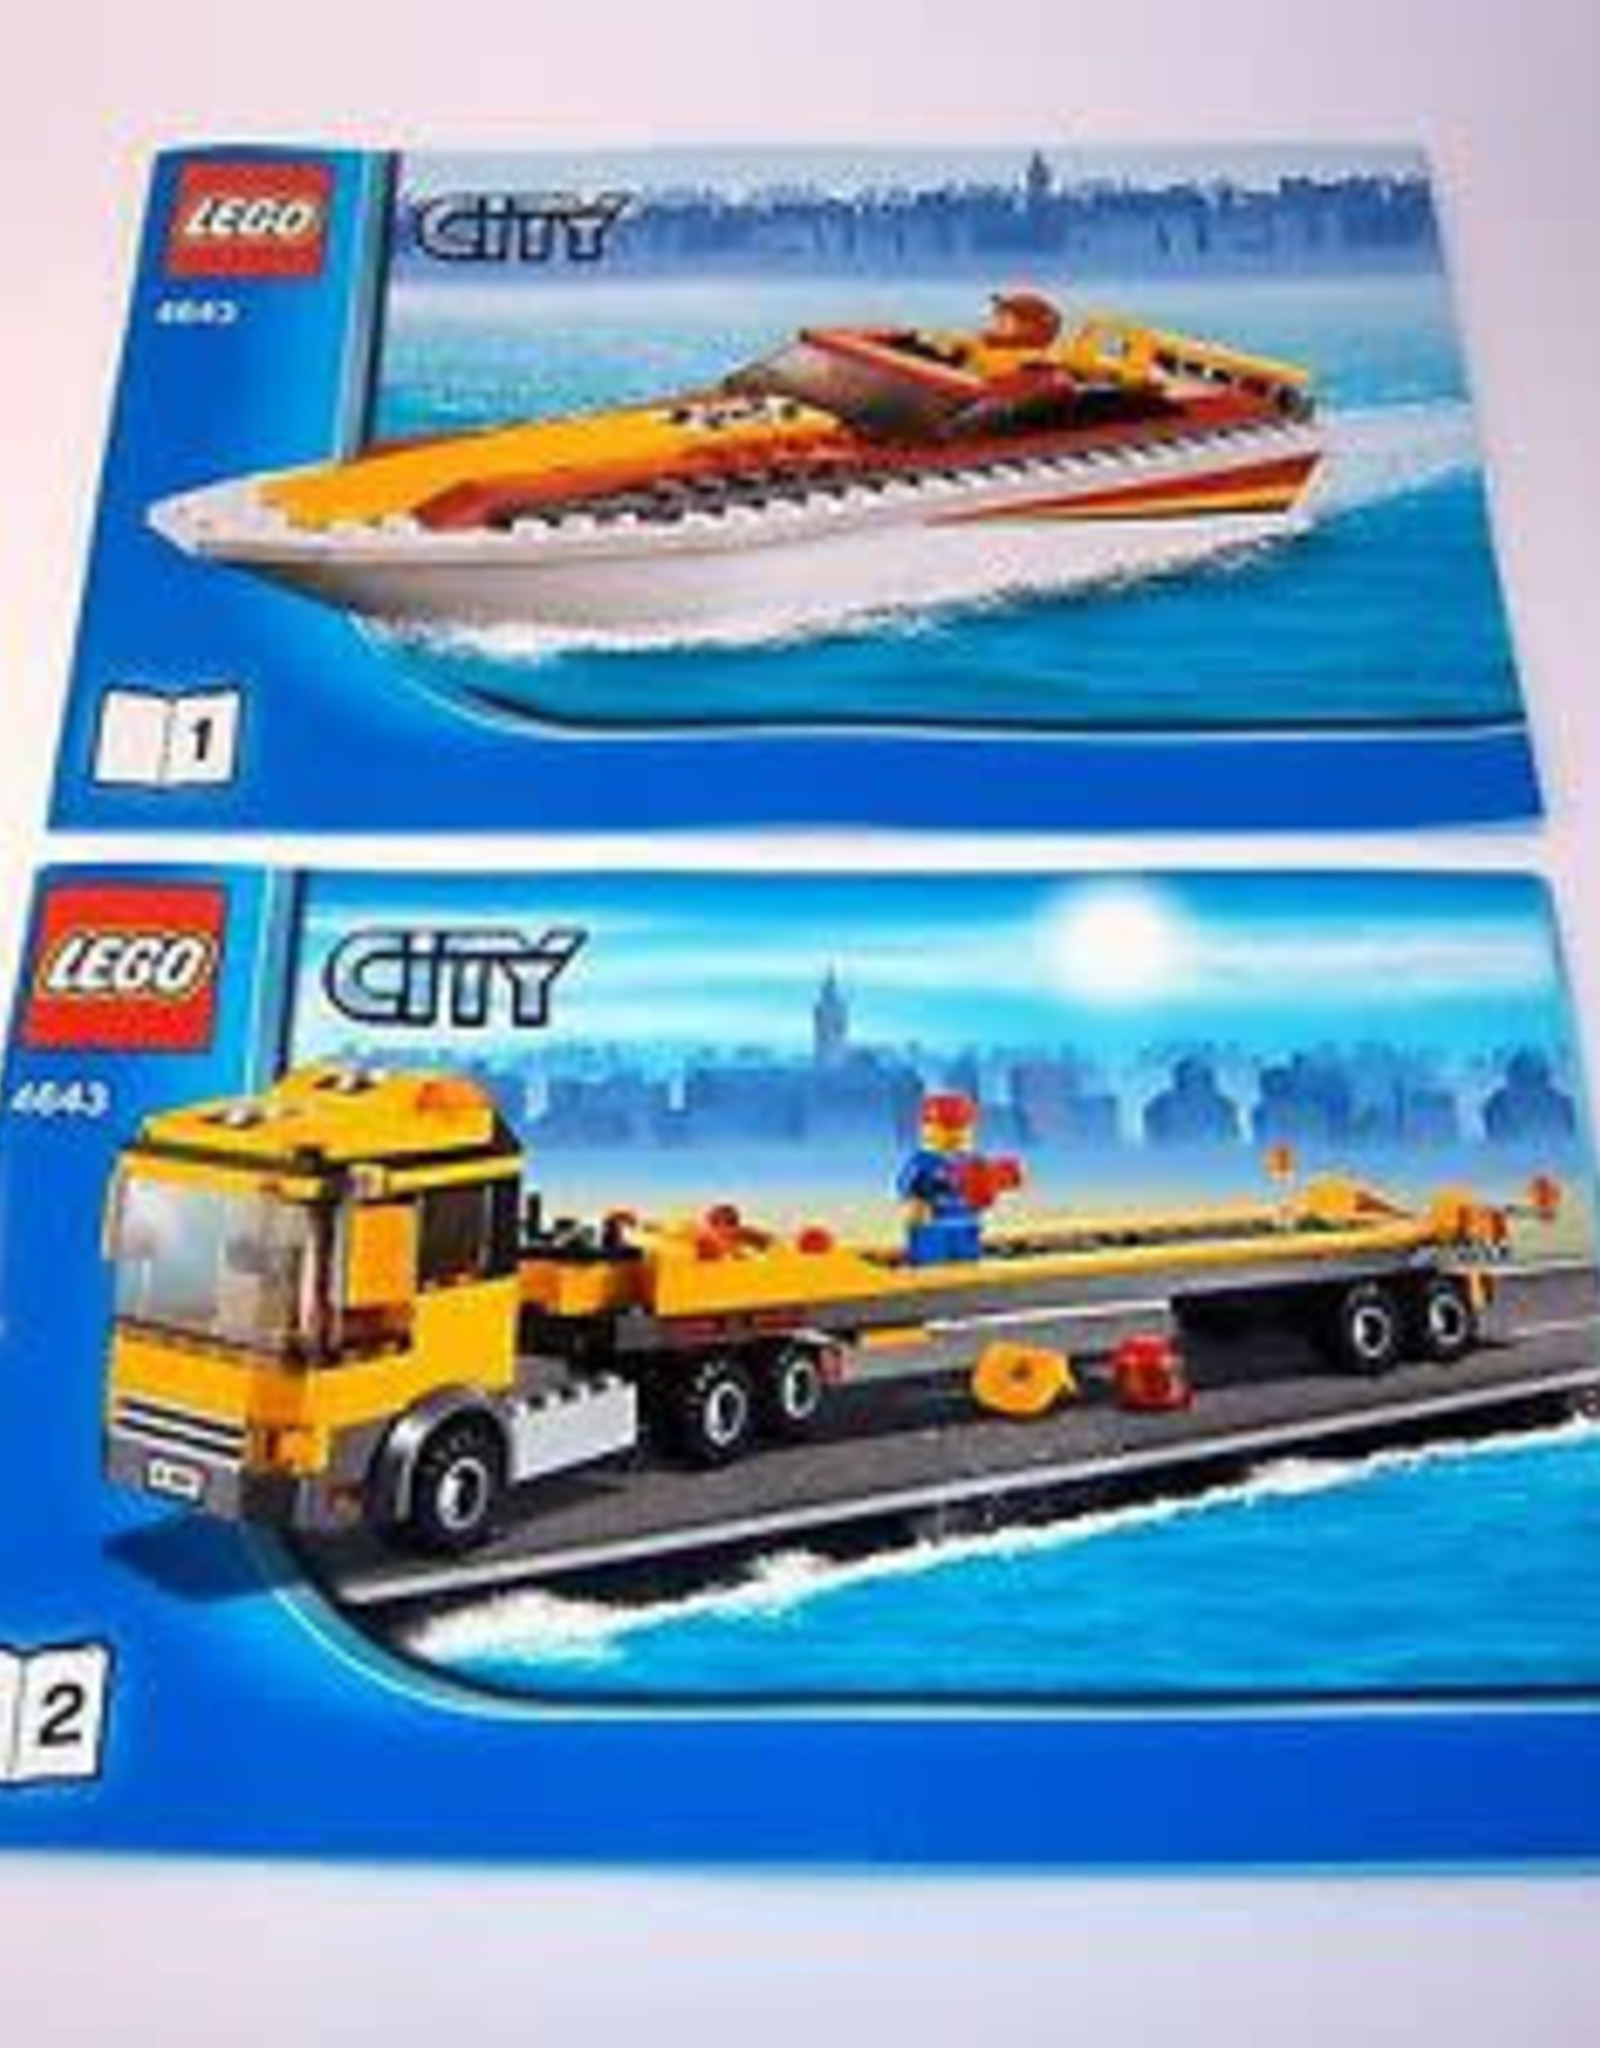 LEGO LEGO 4643 Power Boat Transporter CITY